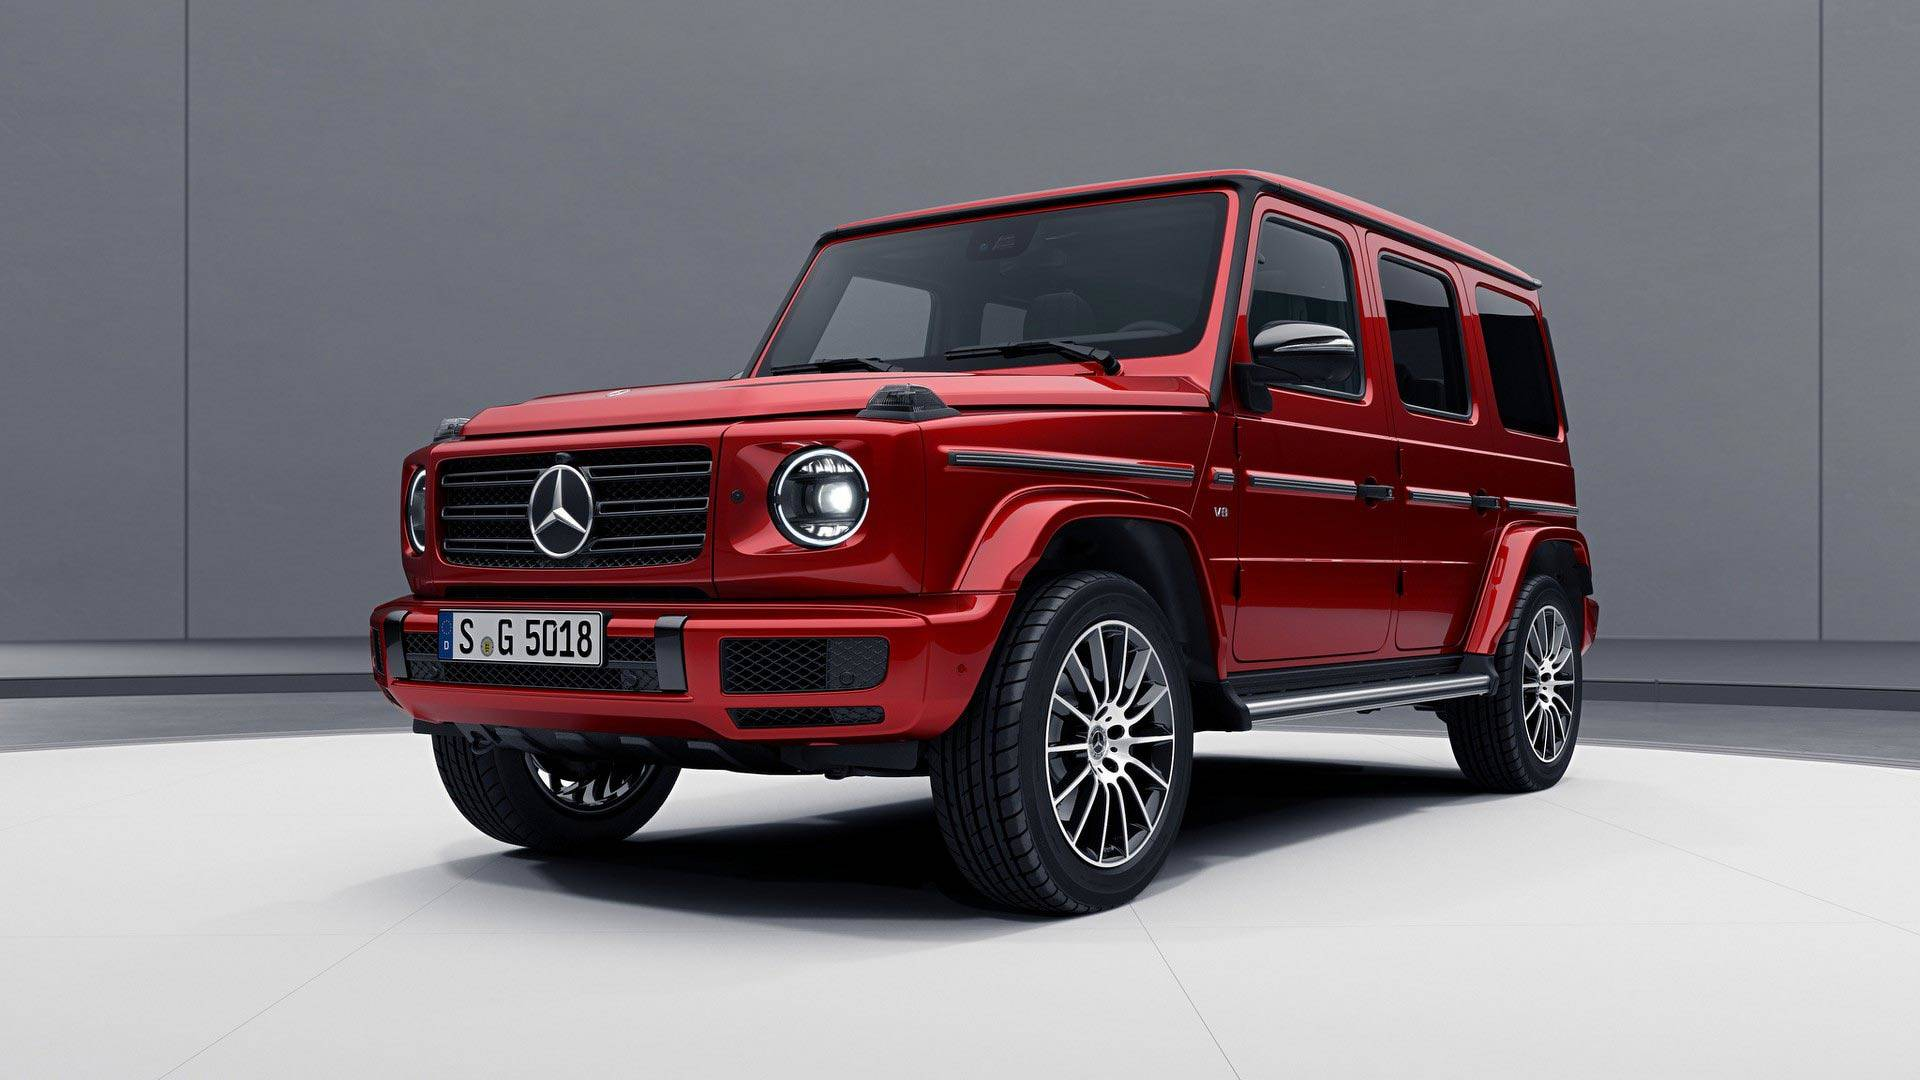 https://s1.cdn.autoevolution.com/images/news/night-package-goes-official-for-the-2019-mercedes-benz-g-class-122823_1.jpg